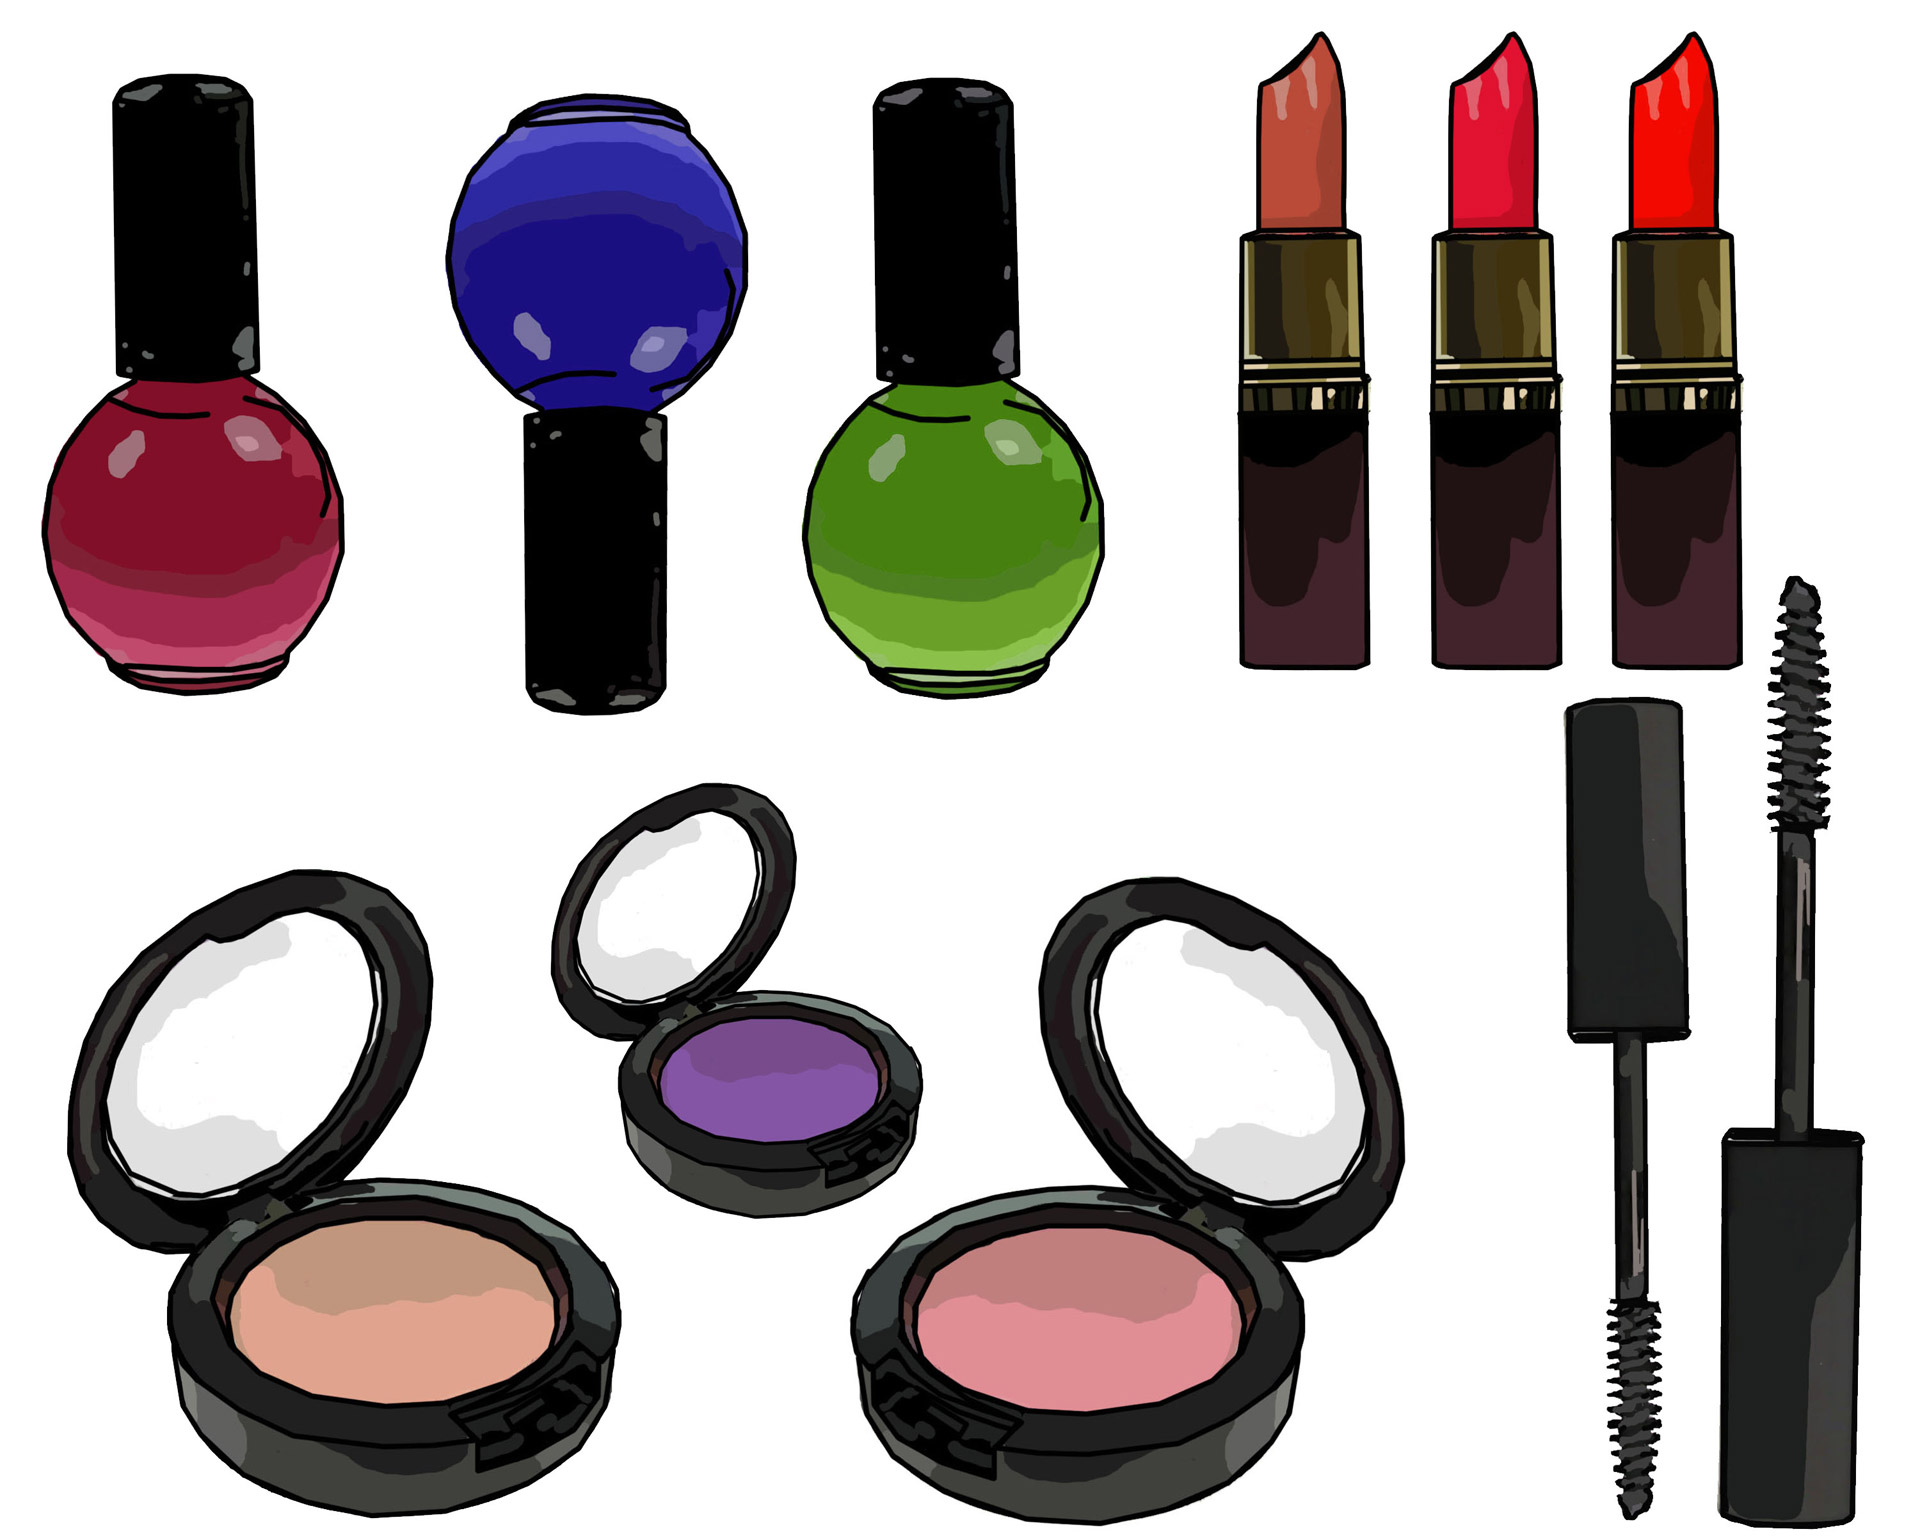 1920x1536 Makeup Clip Art Free Stock Photo